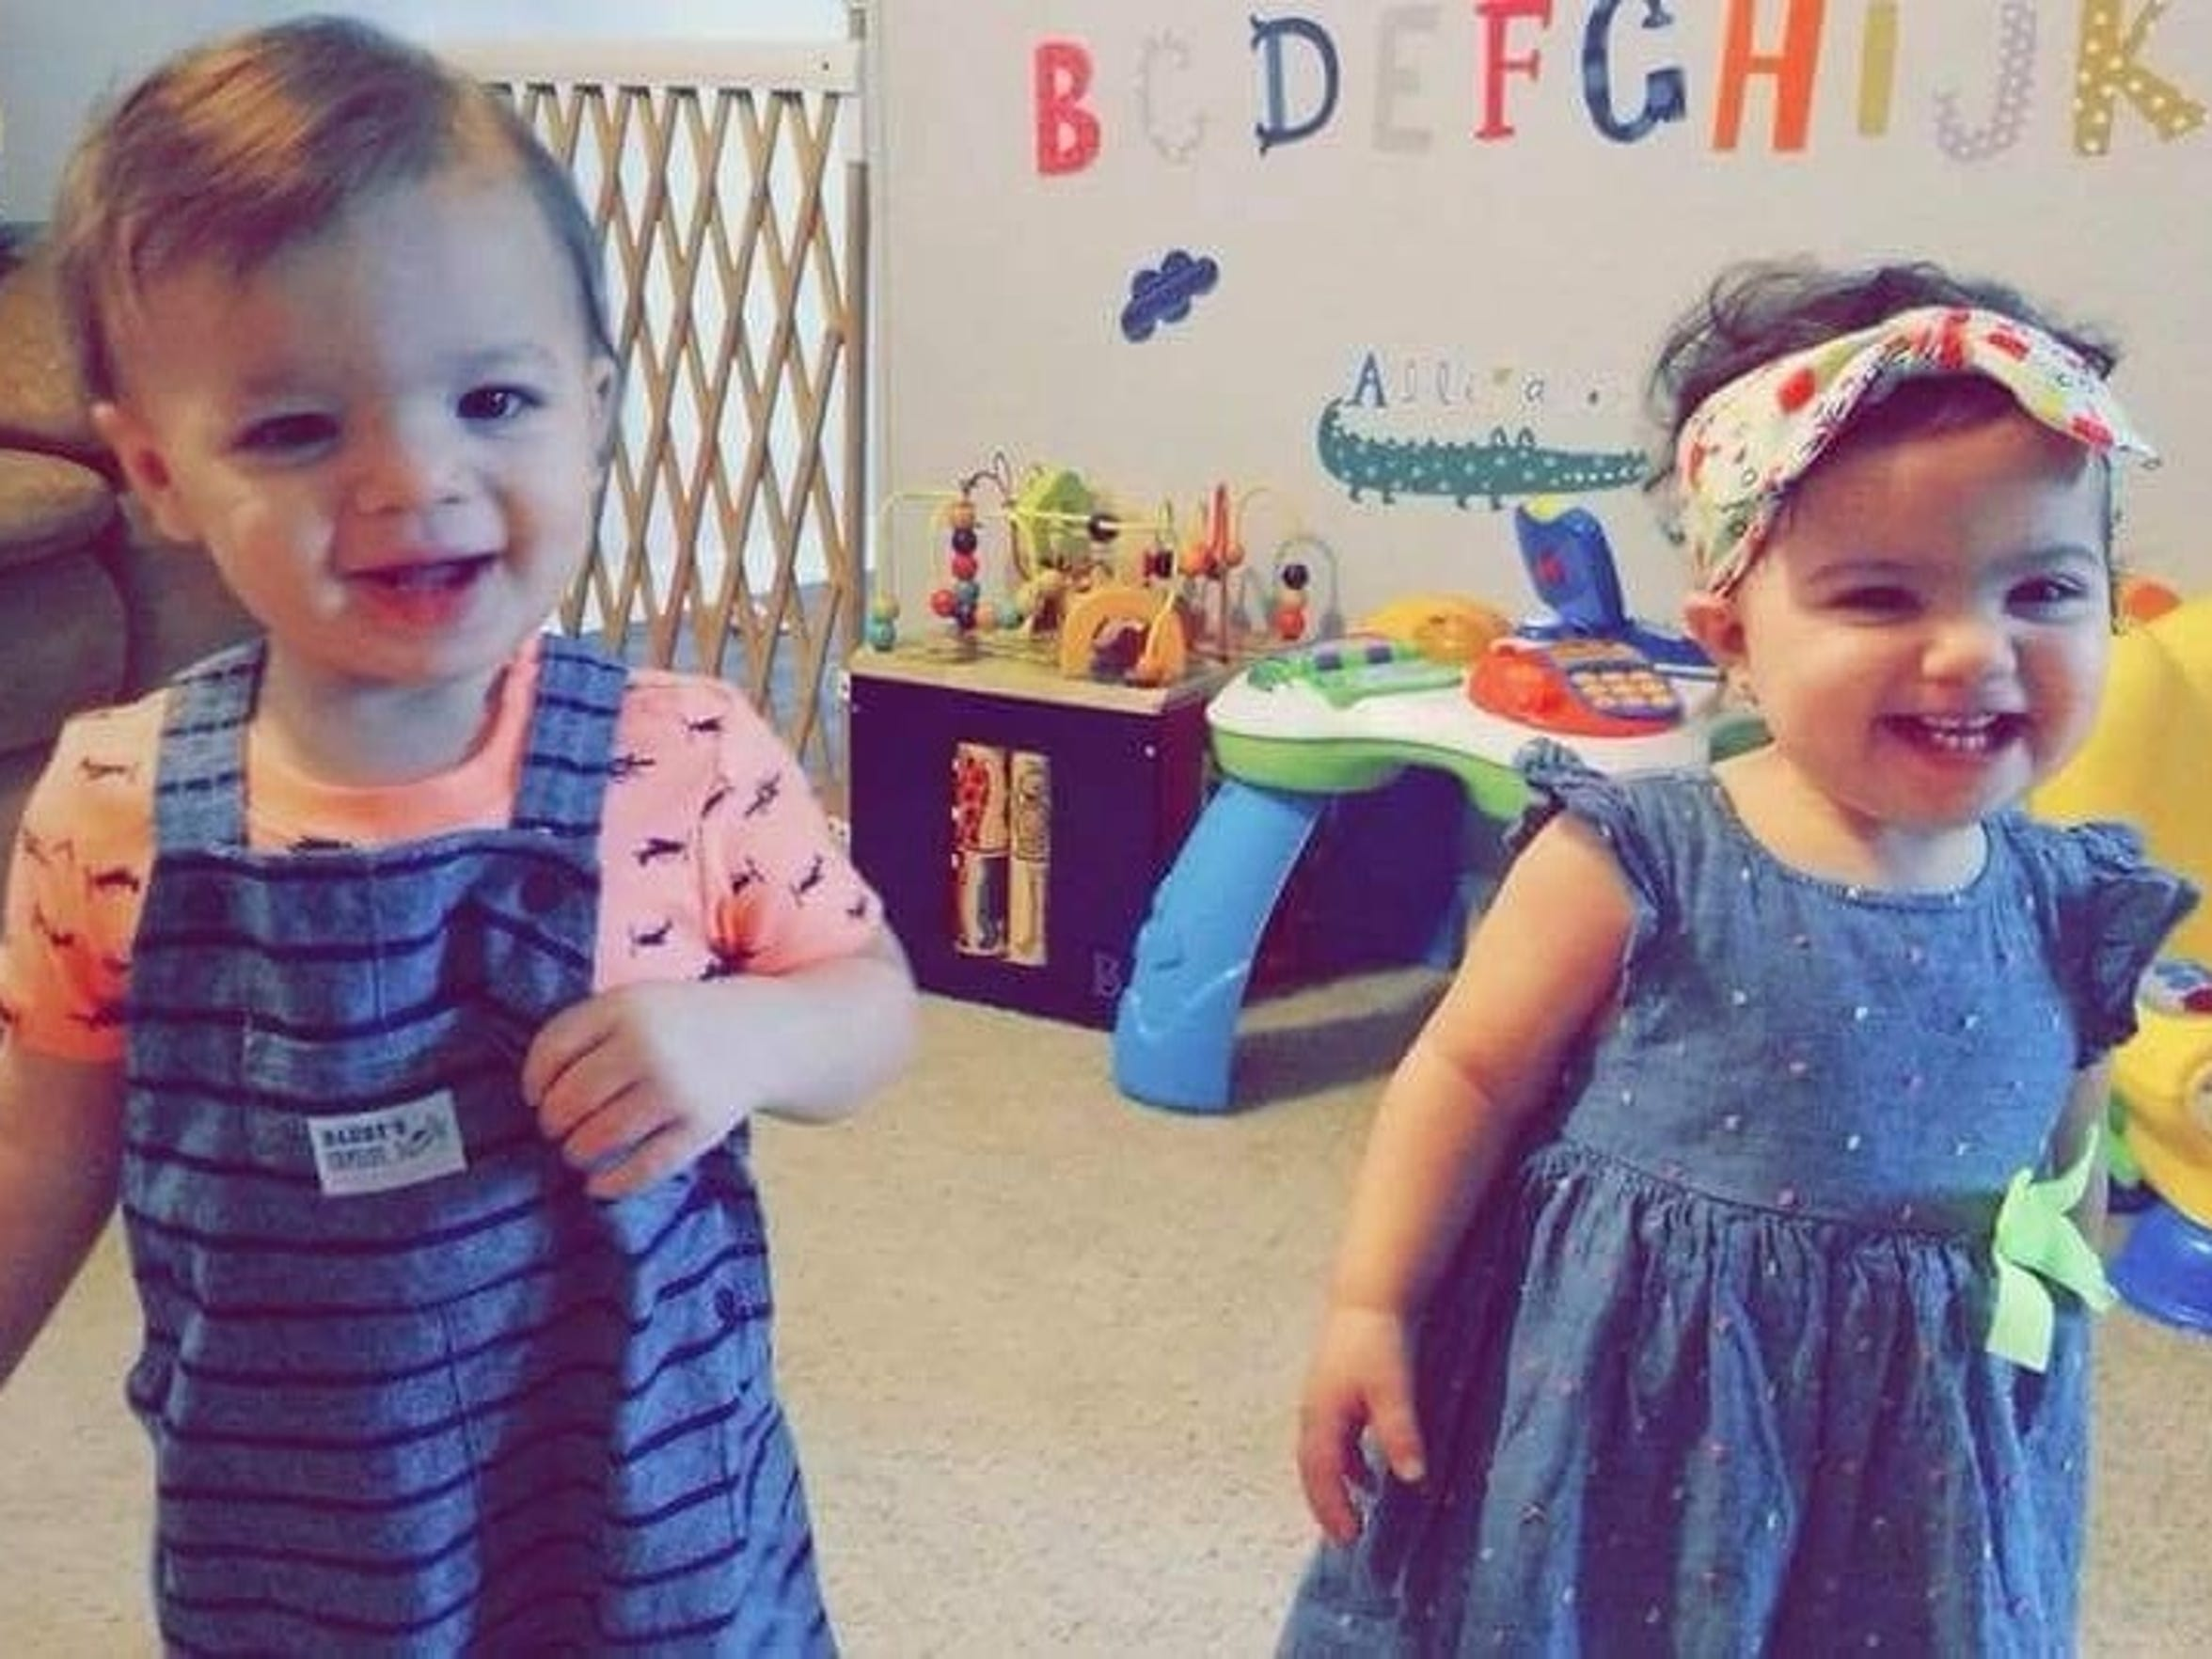 Elijah, left, and Elyssa Orejuela died after falling into a pool at an unlicensed day care in Knoxville last year.